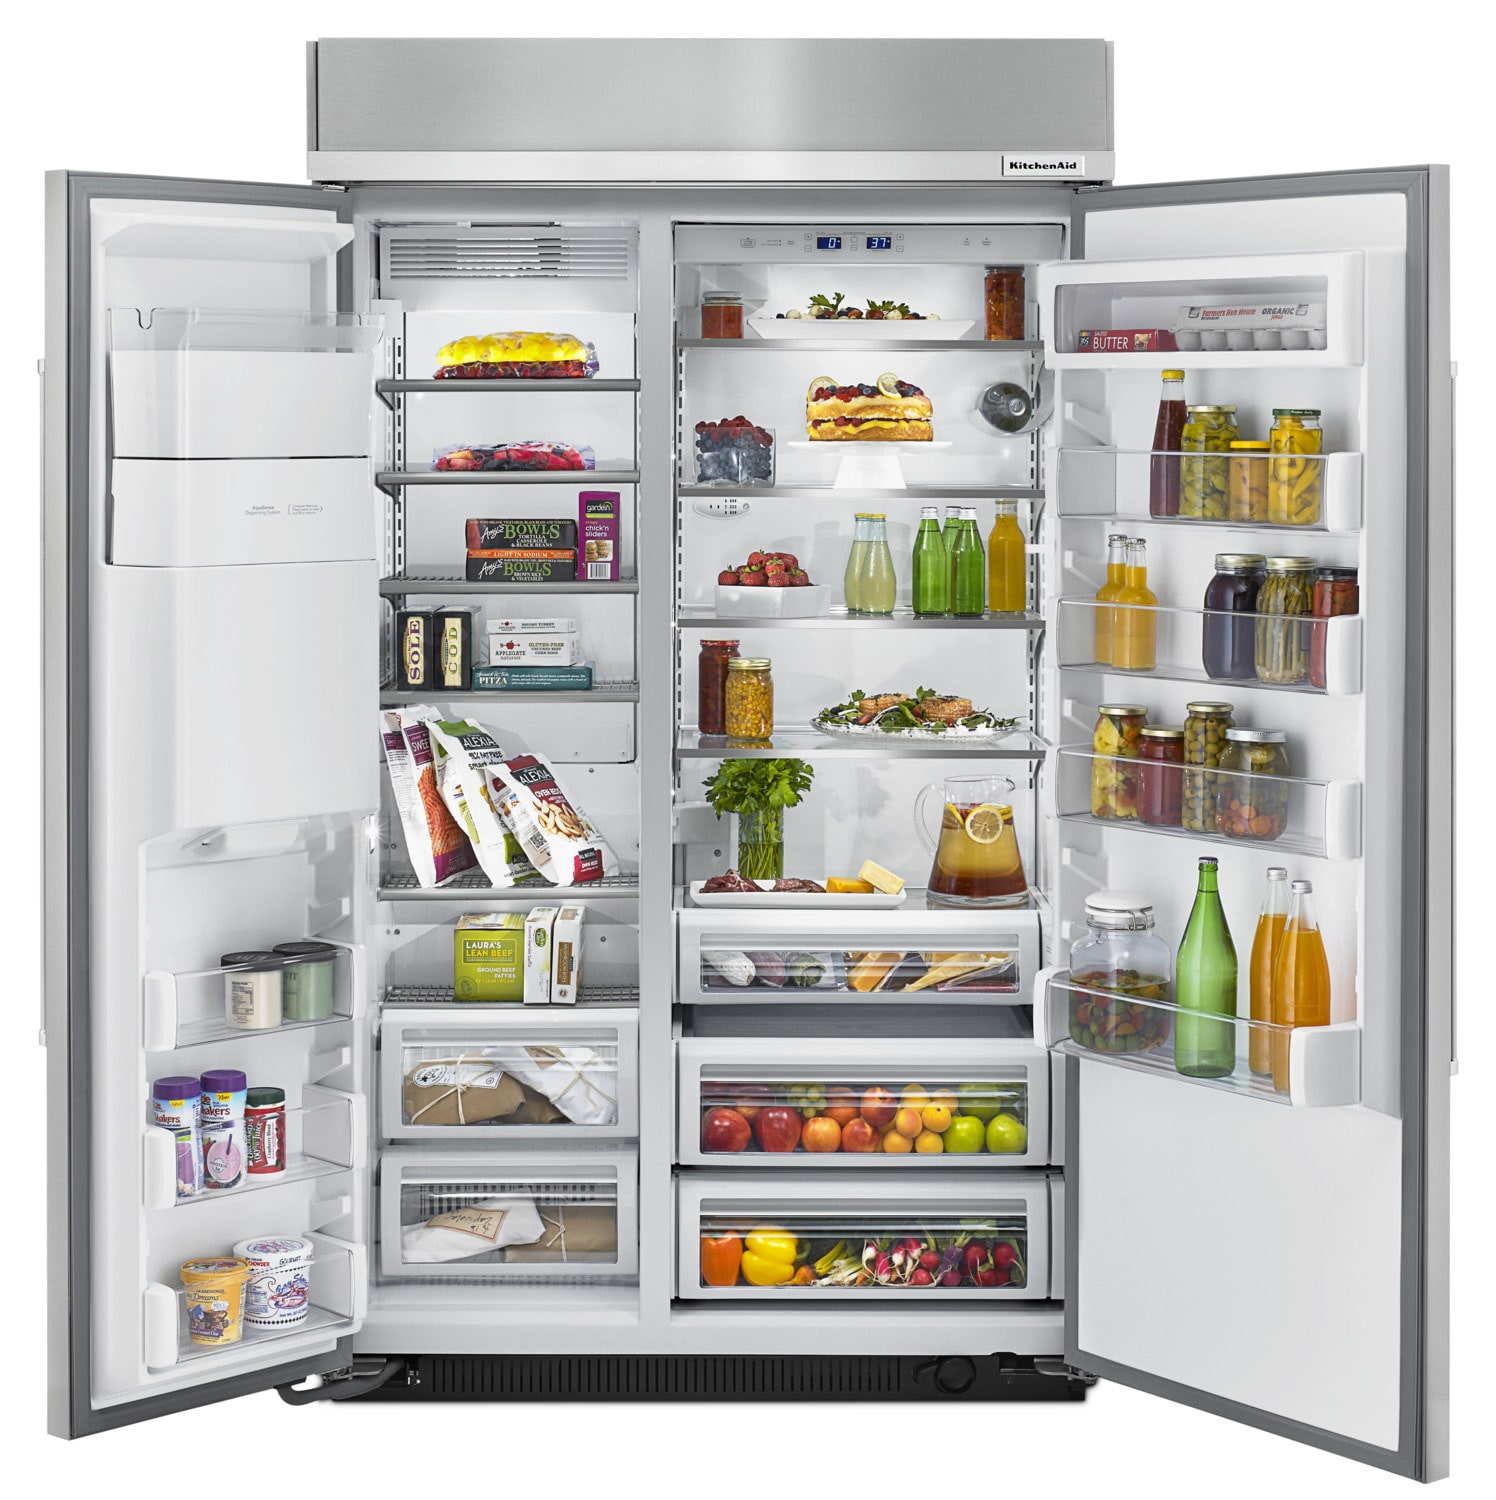 kitchenaid 29 5 cu ft built in side by side refrigerator